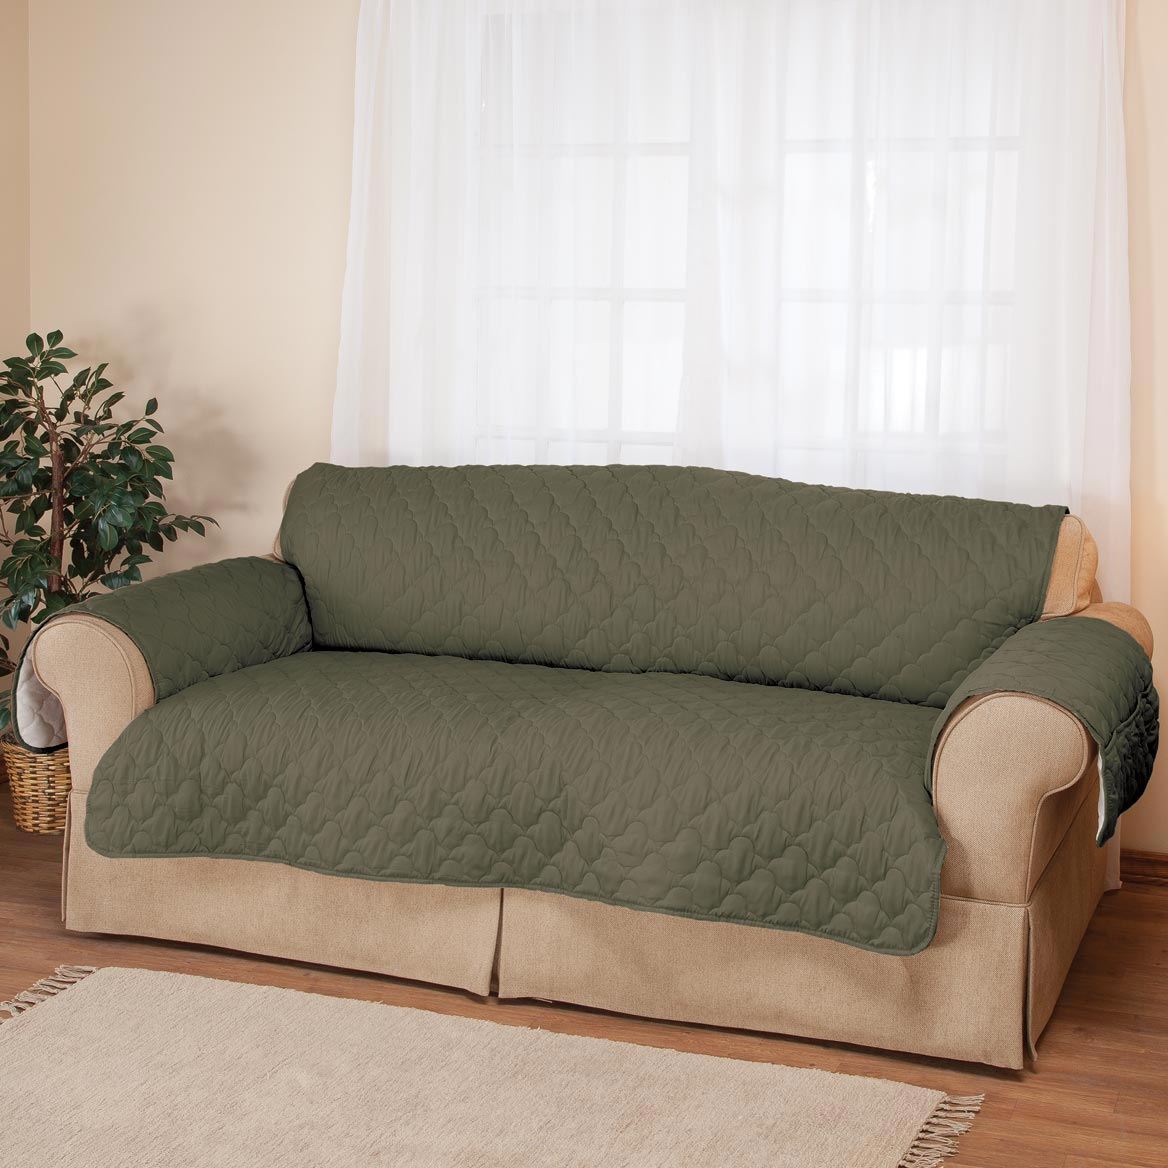 Deluxe Microfiber Sofa Cover By